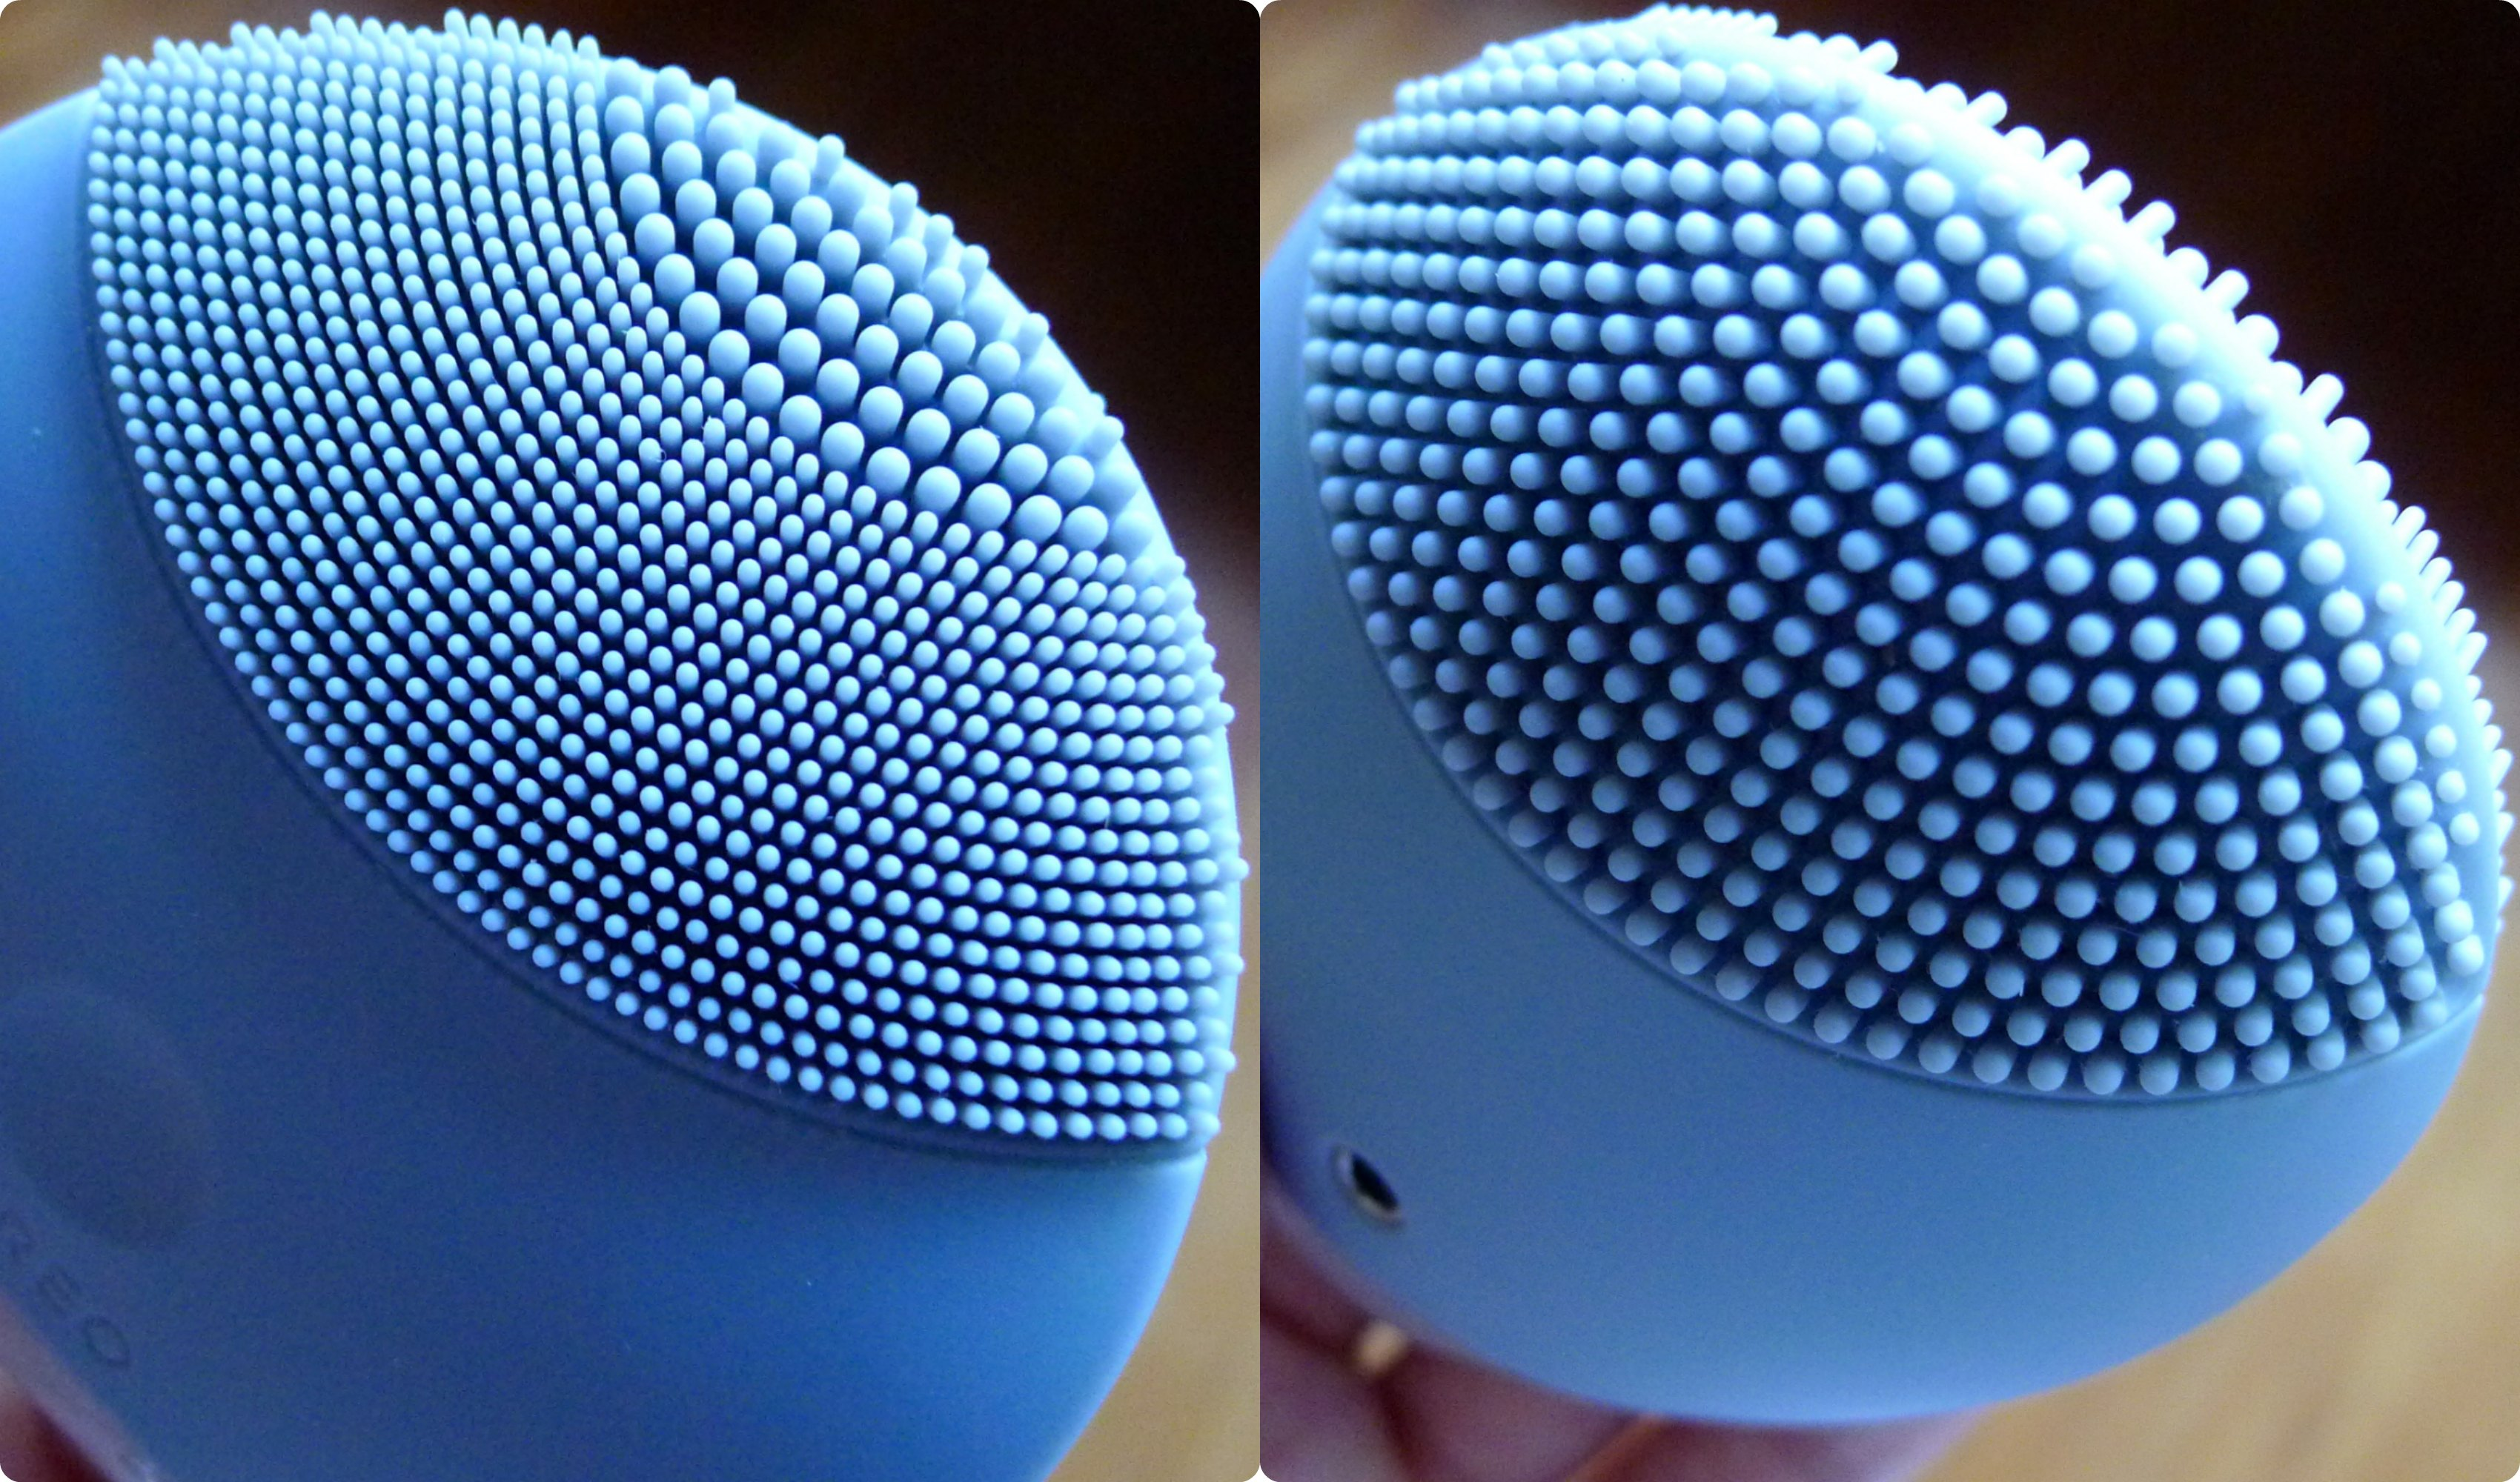 Review Foreo Luna Mini The Beauty Bee 2 Two Faces Of In Cool Gray Serve Different Purposes Photo On Left Shows Smaller Touch Points Which Are Meant For General